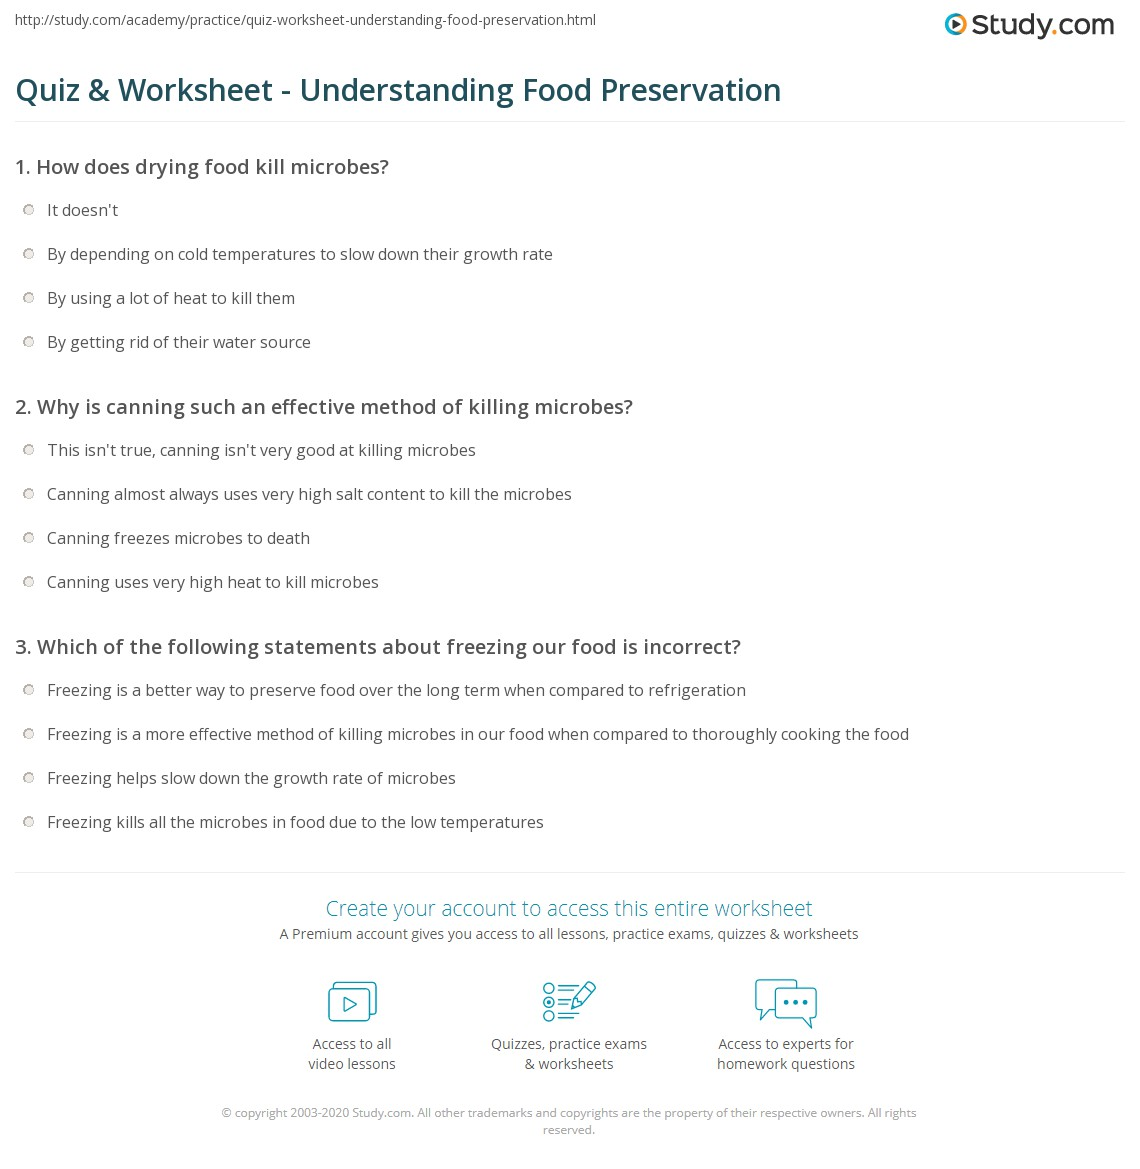 Quiz & Worksheet - Understanding Food Preservation | Study.com